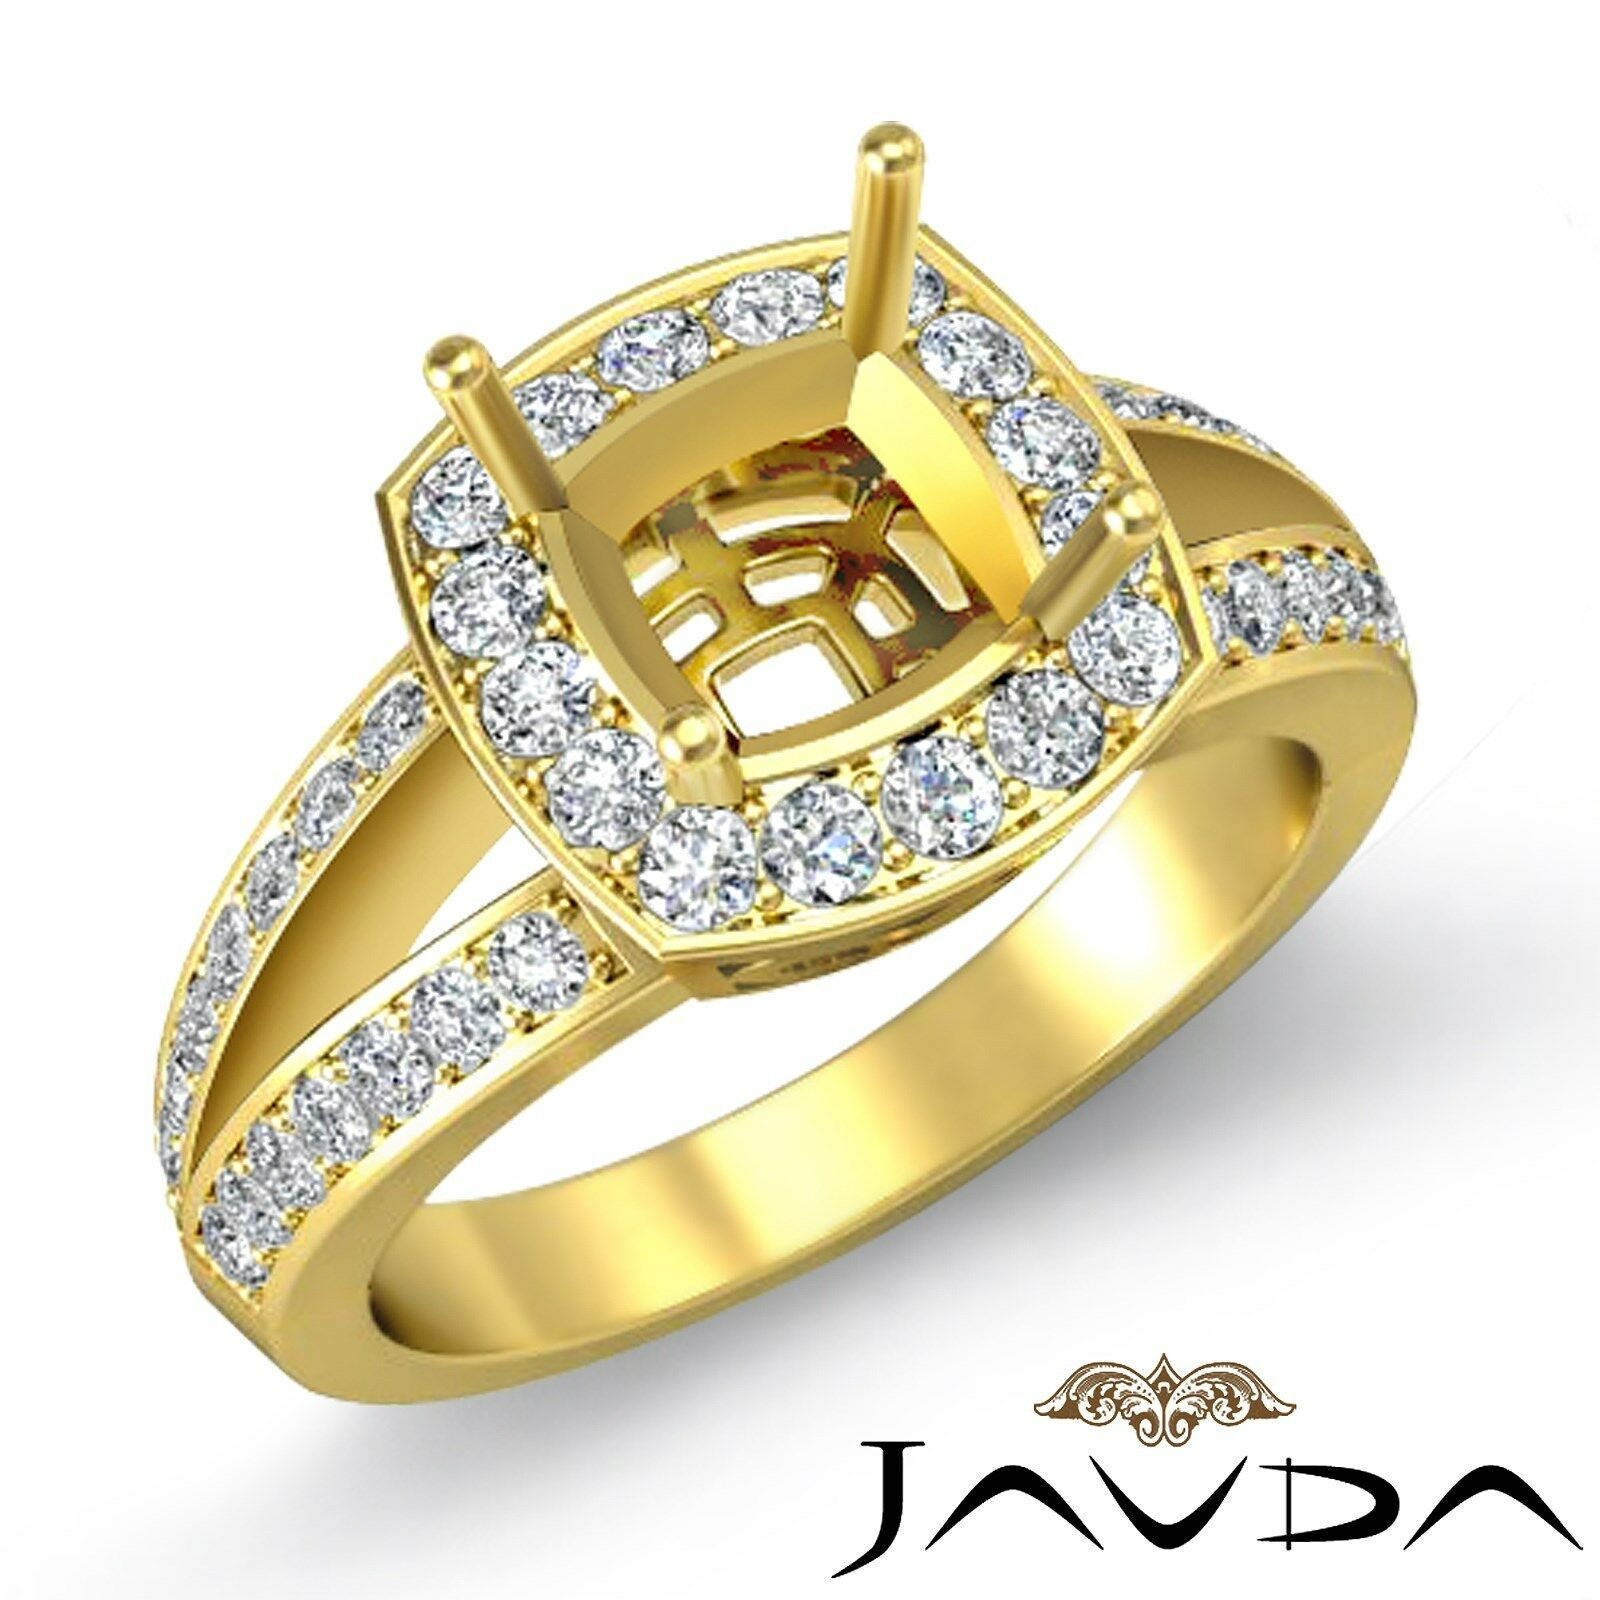 Diamond Engagement Ring 14k Yellow gold Cushion Semi Mount Halo Pave 0.6 Carat